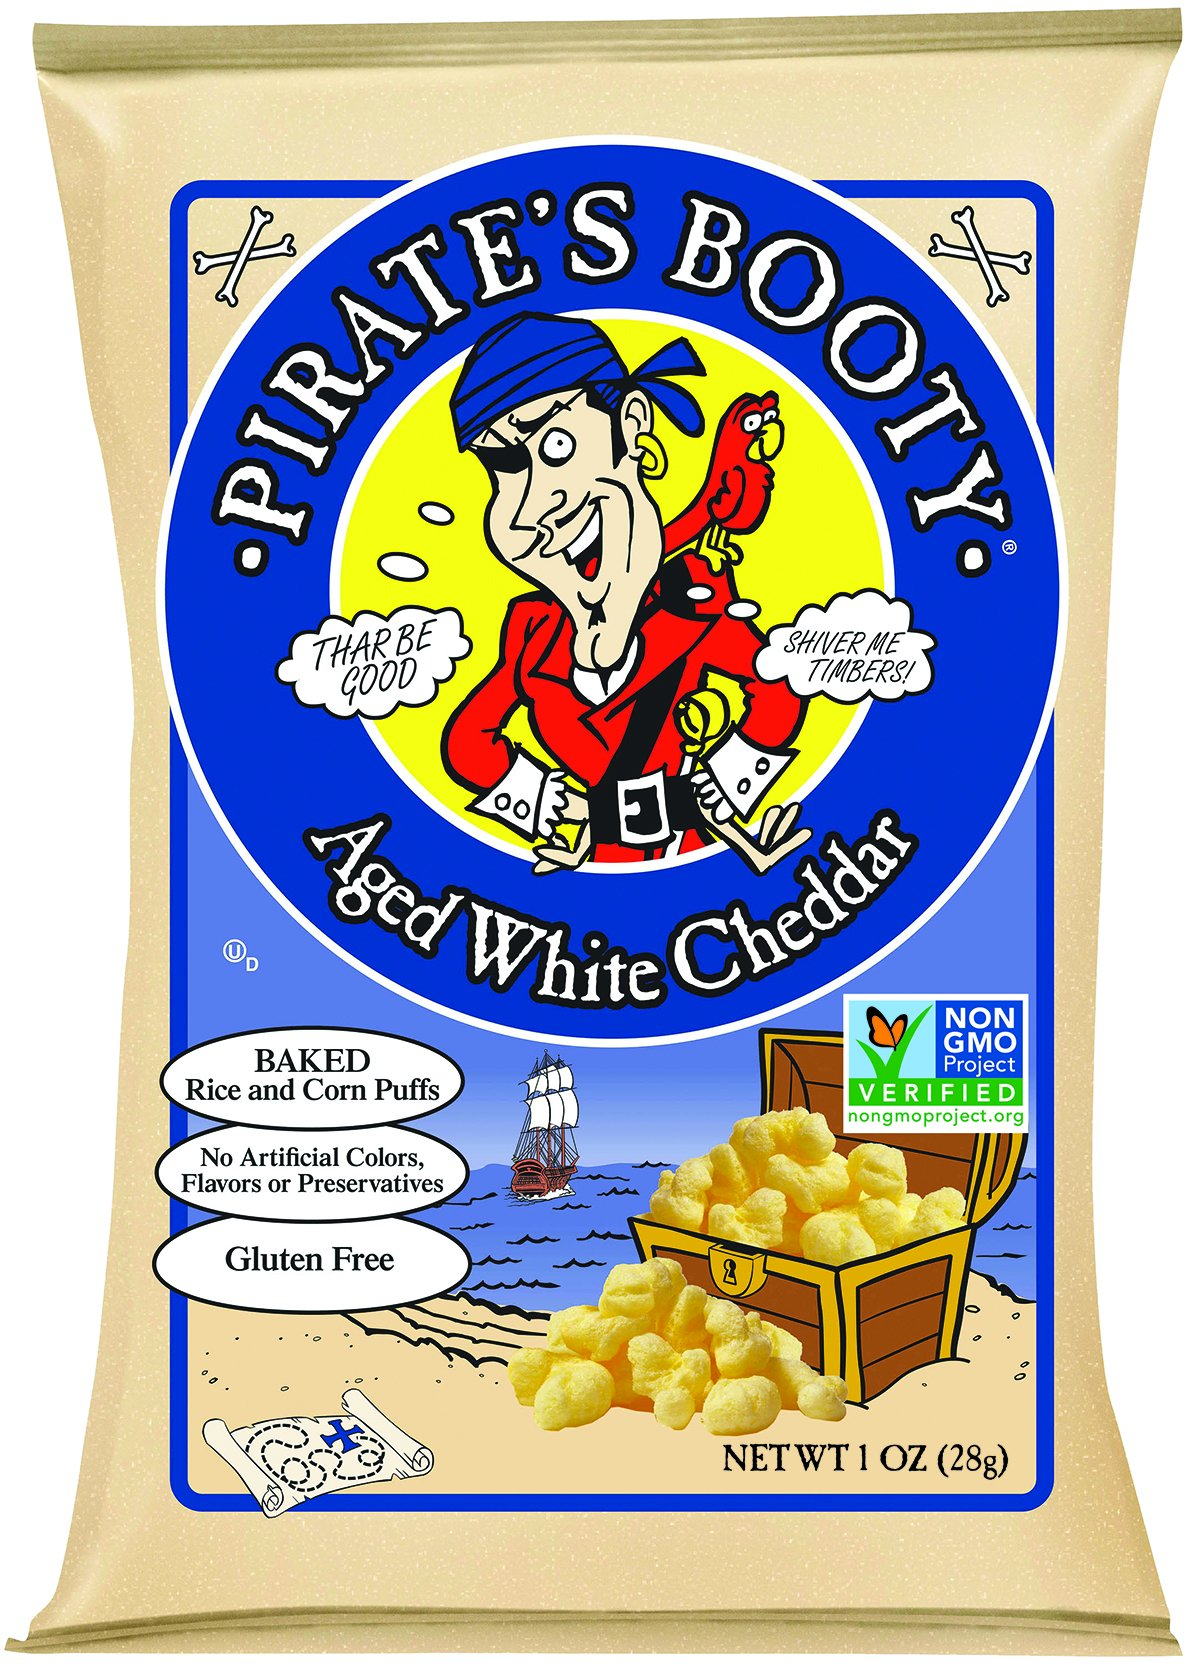 Pirate's Booty Aged White Cheddar, 4 Ounce (Packaging May Vary)(Pack of 12)